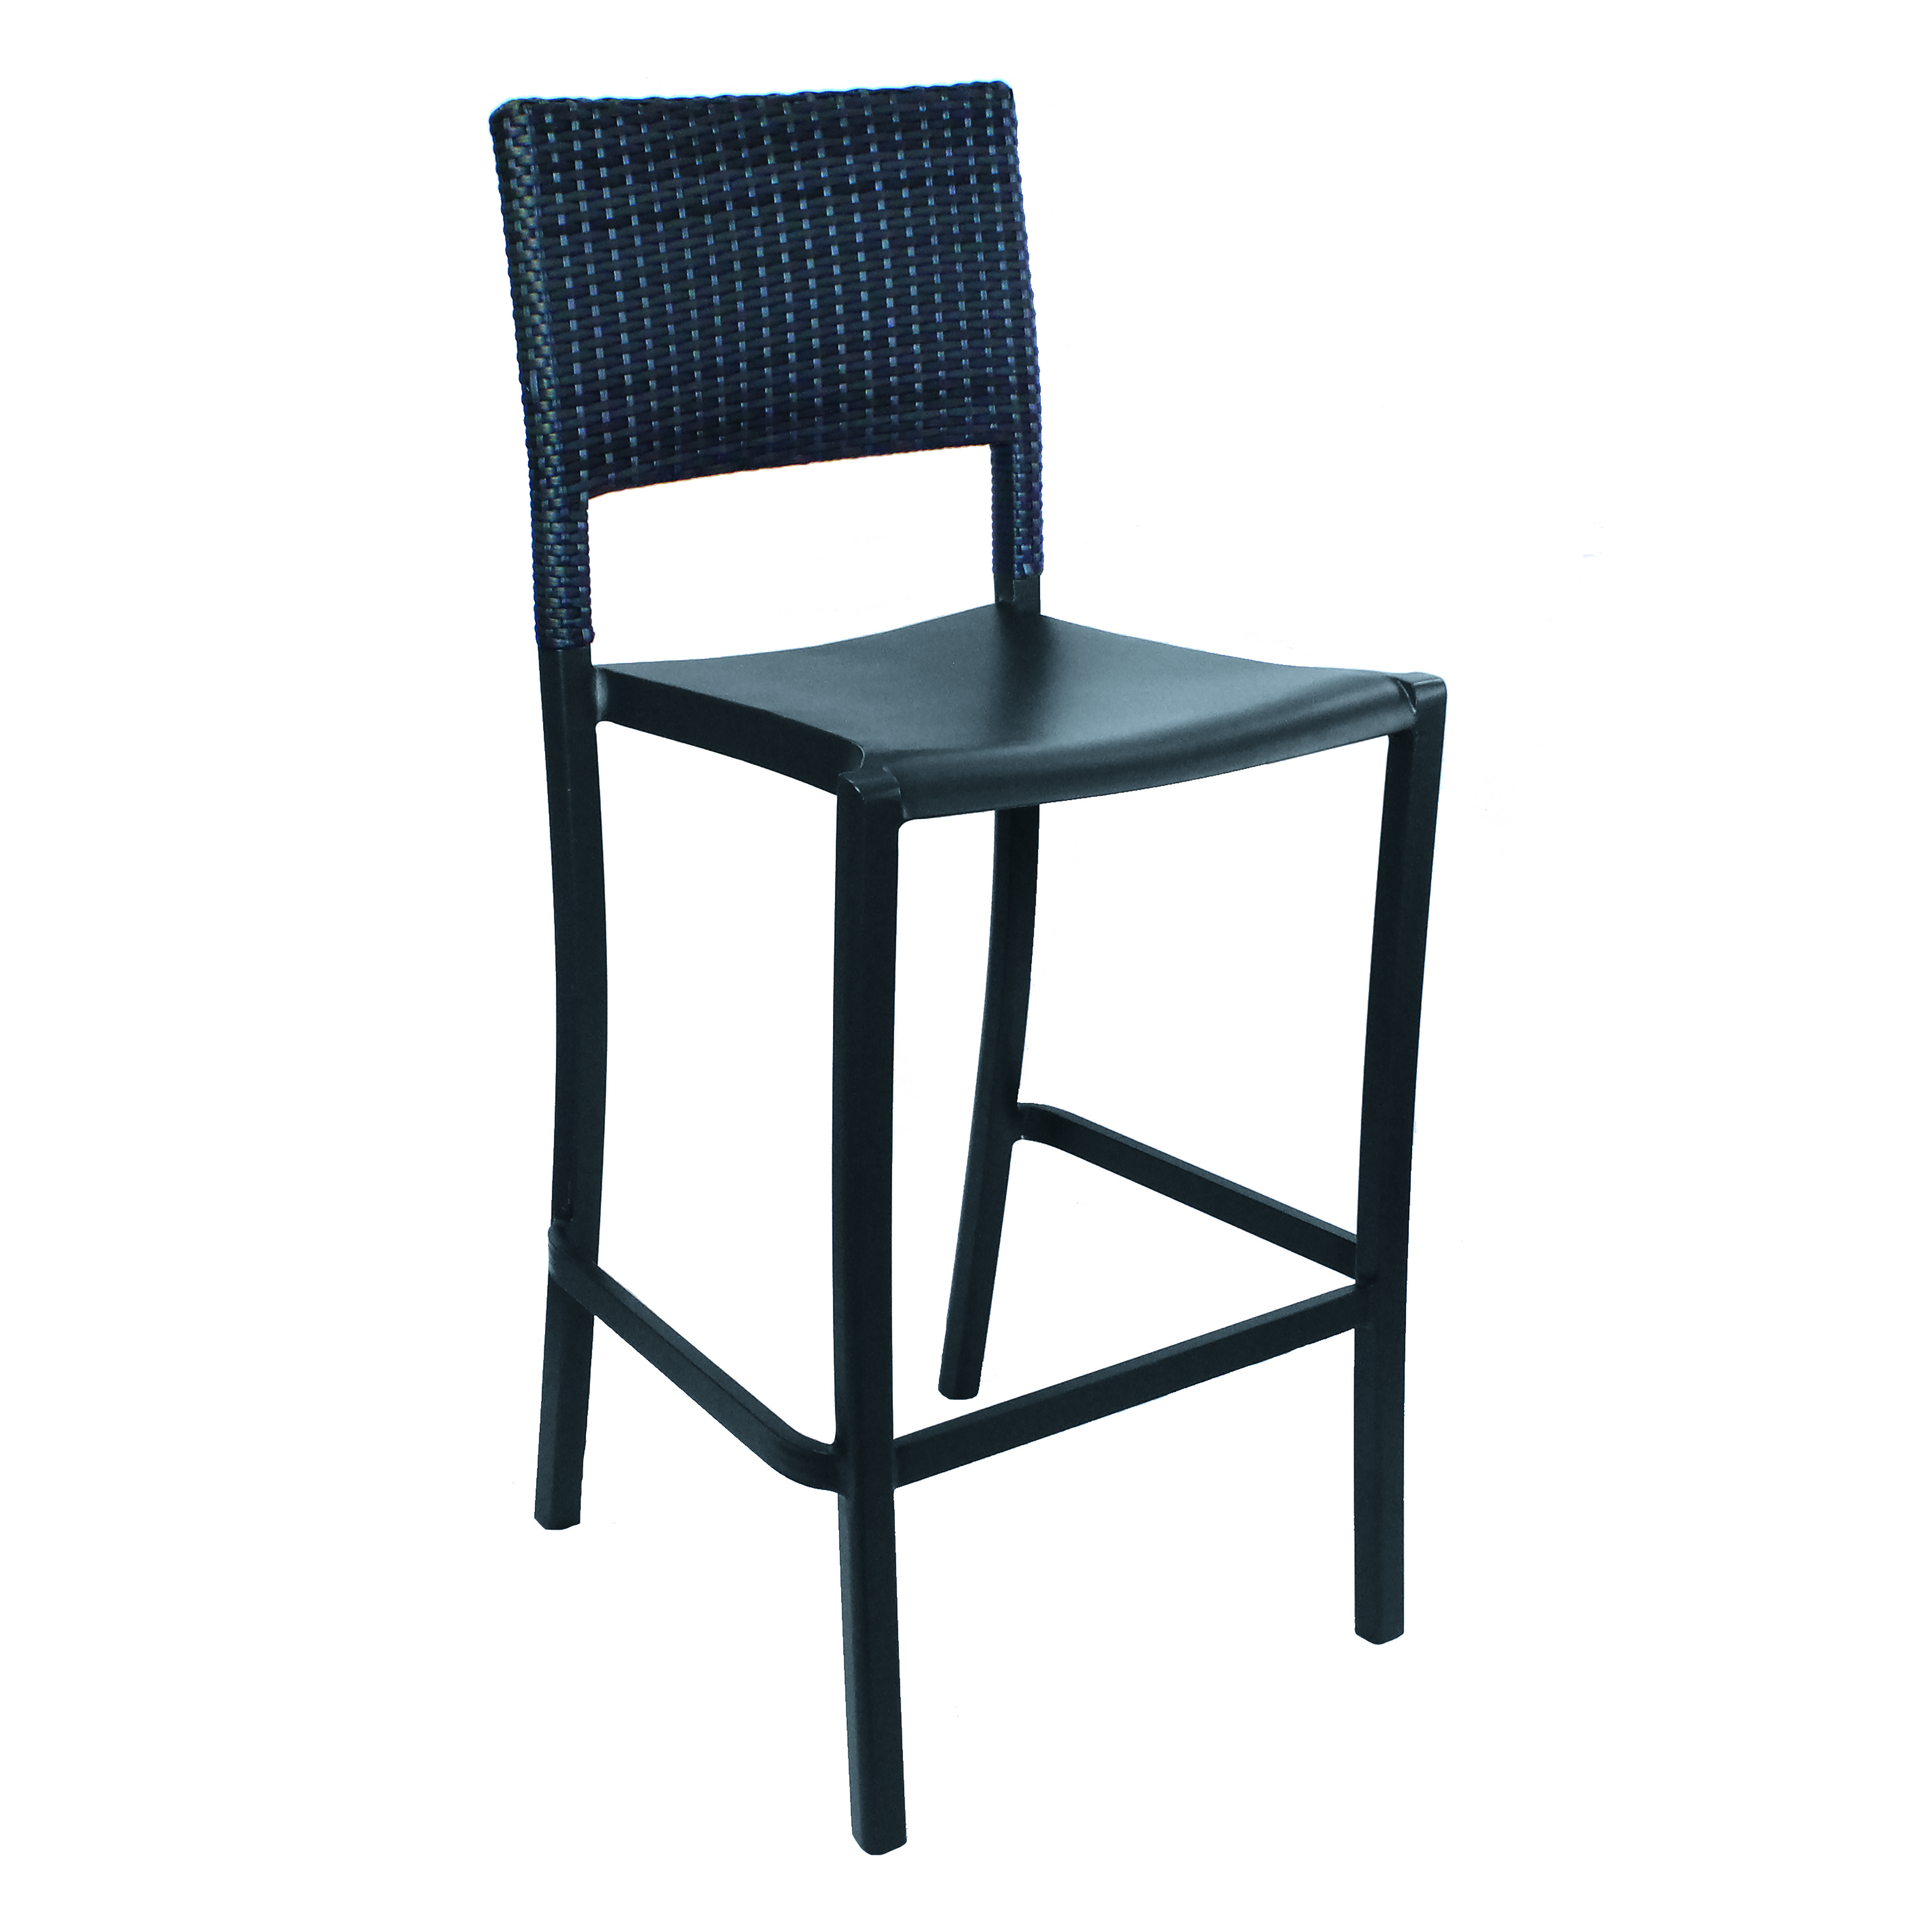 Grosfillex US927002 bar stool, stacking, outdoor